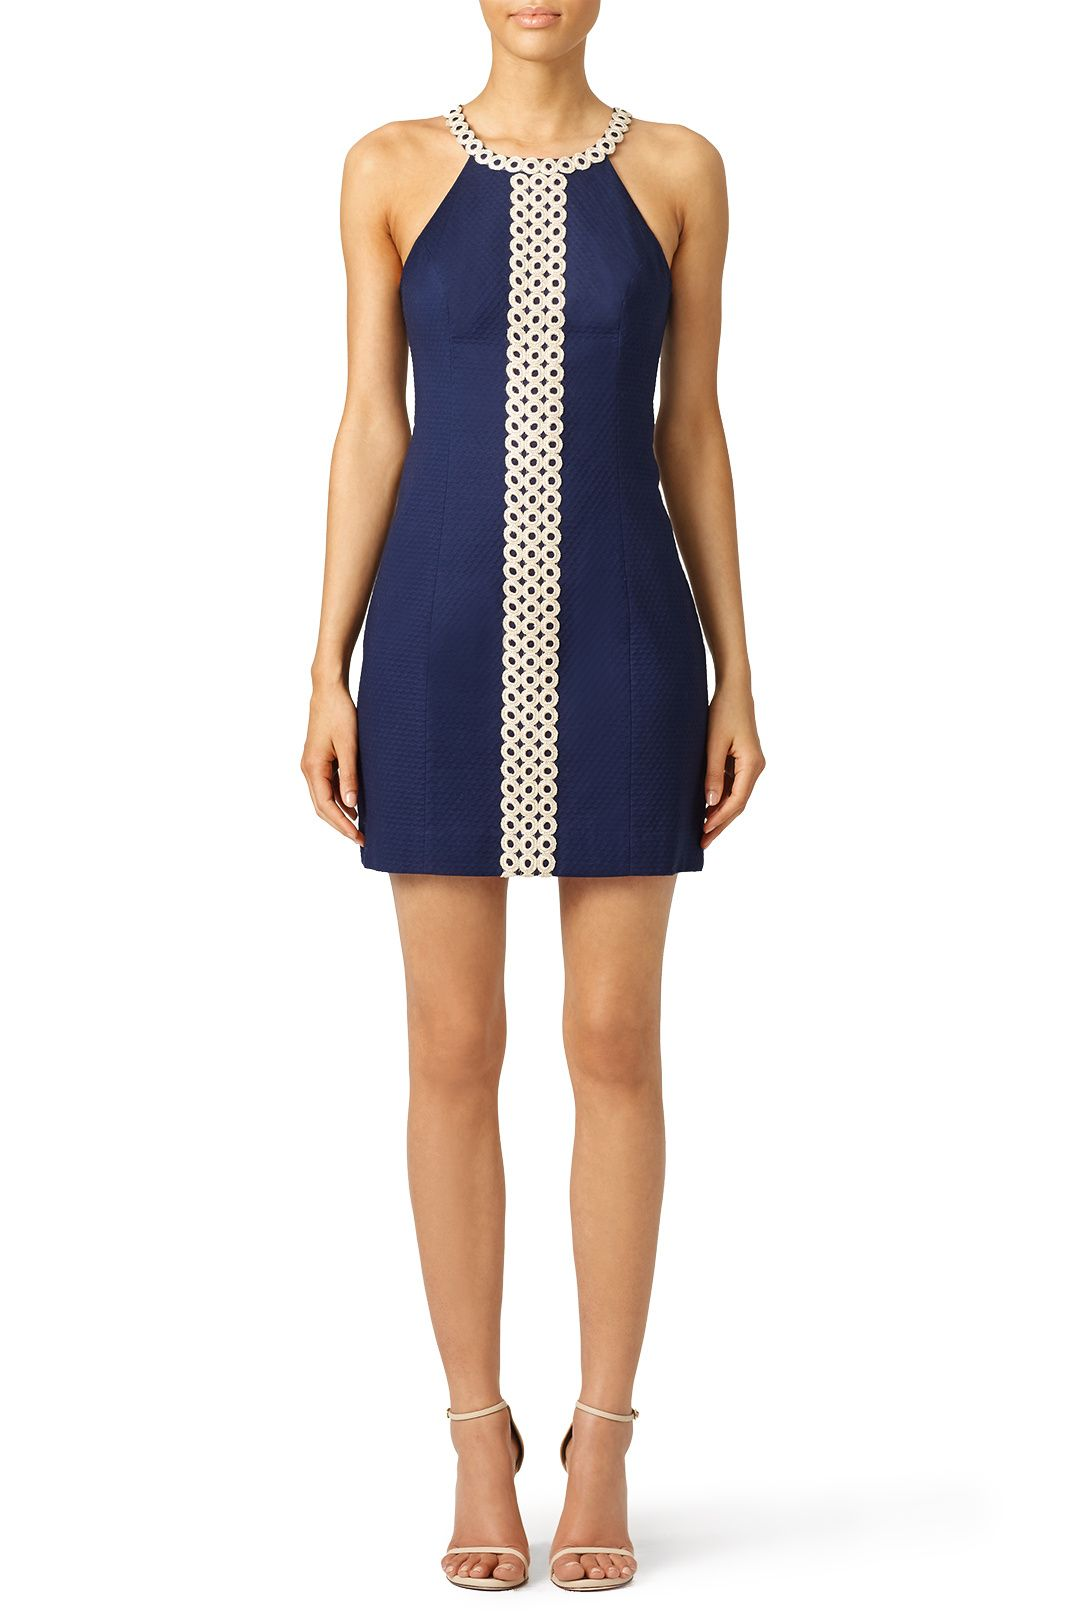 e0faa073df5b Navy shift dress with gold detail. Perfect for a summer bridal shower! Lilly  Pulitzer Navy Sasha Shift